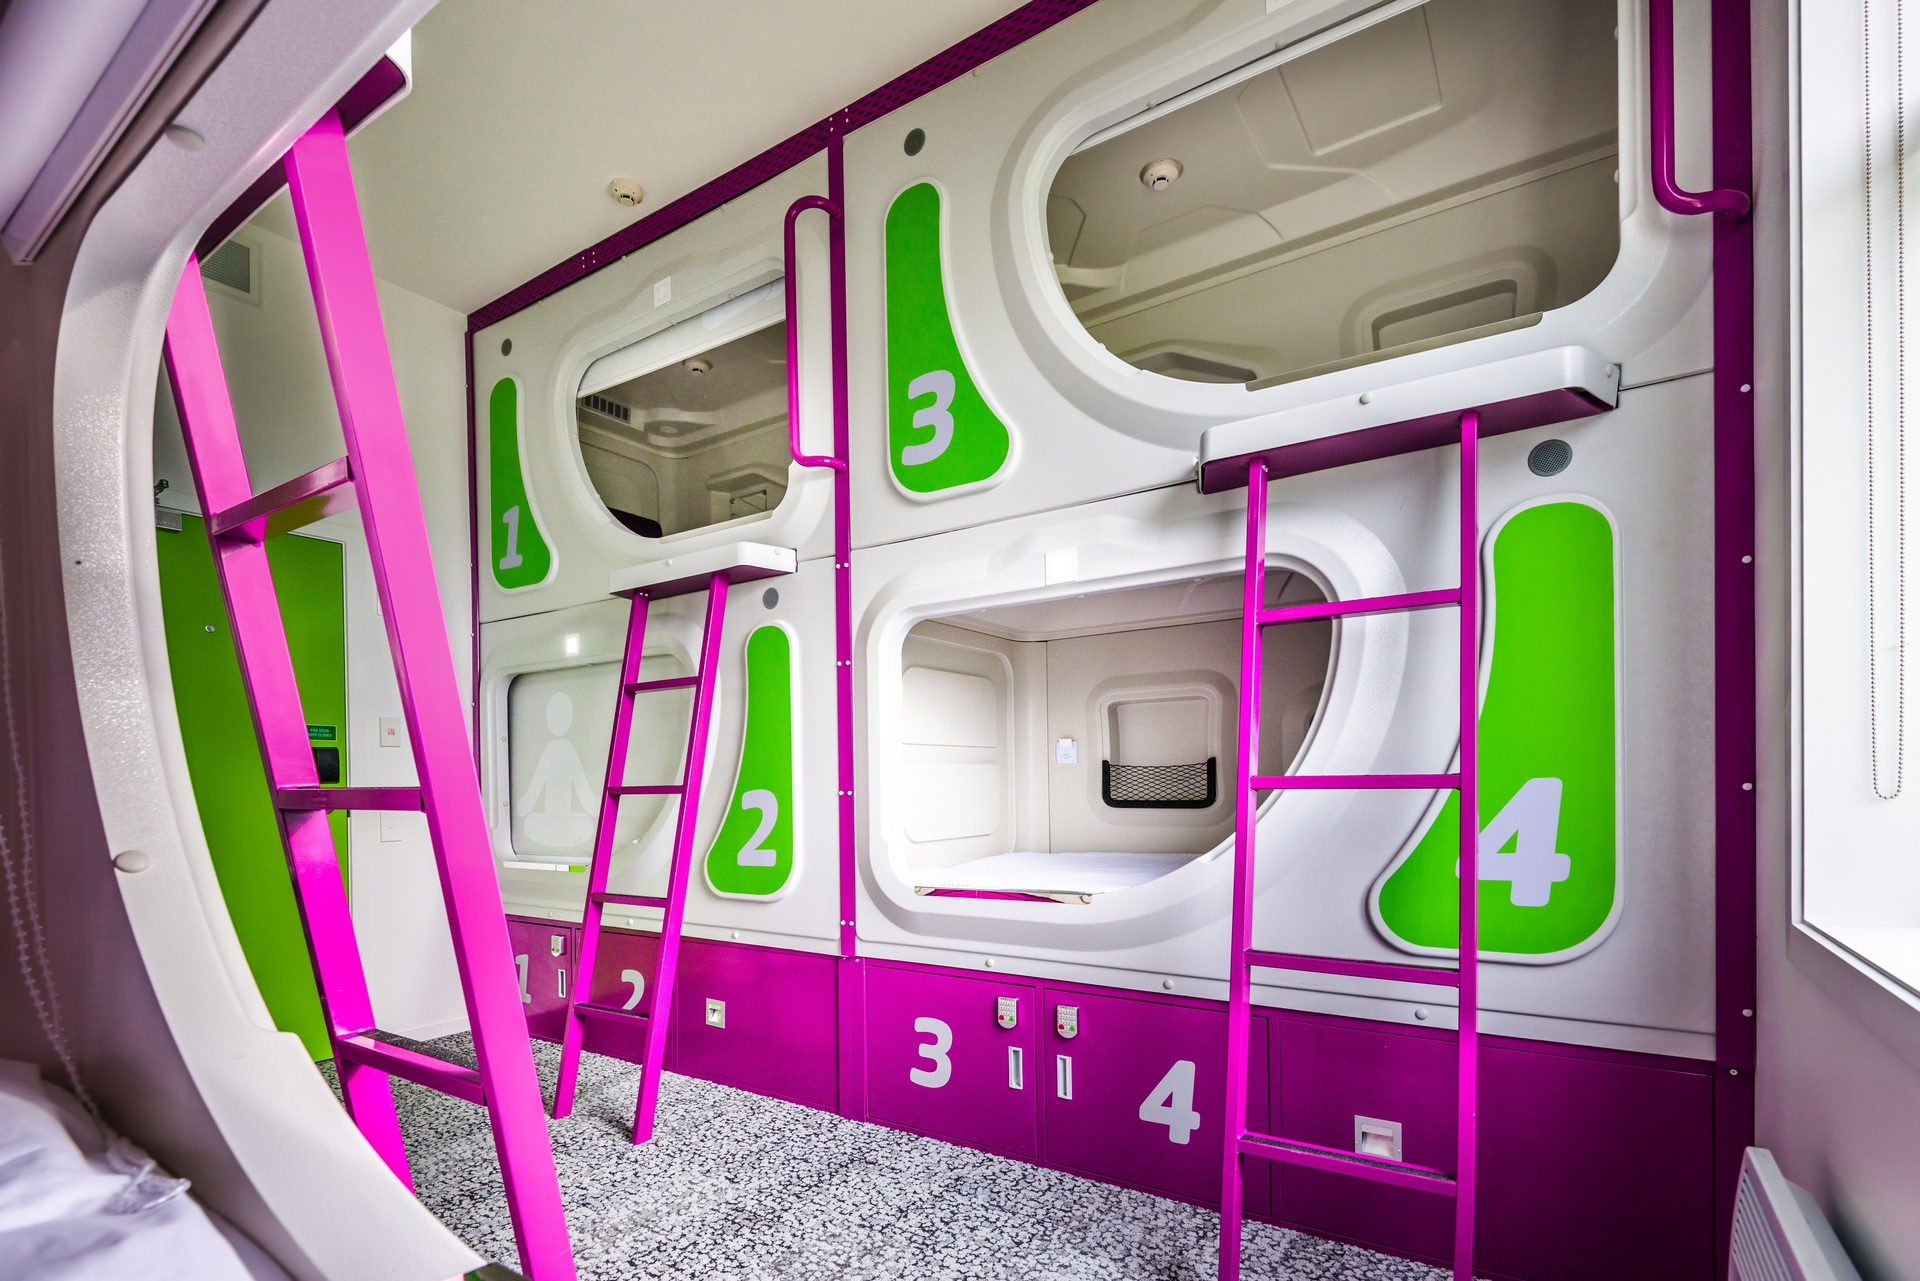 Jucy pods arrive in the USA with $16m San Diego hotel